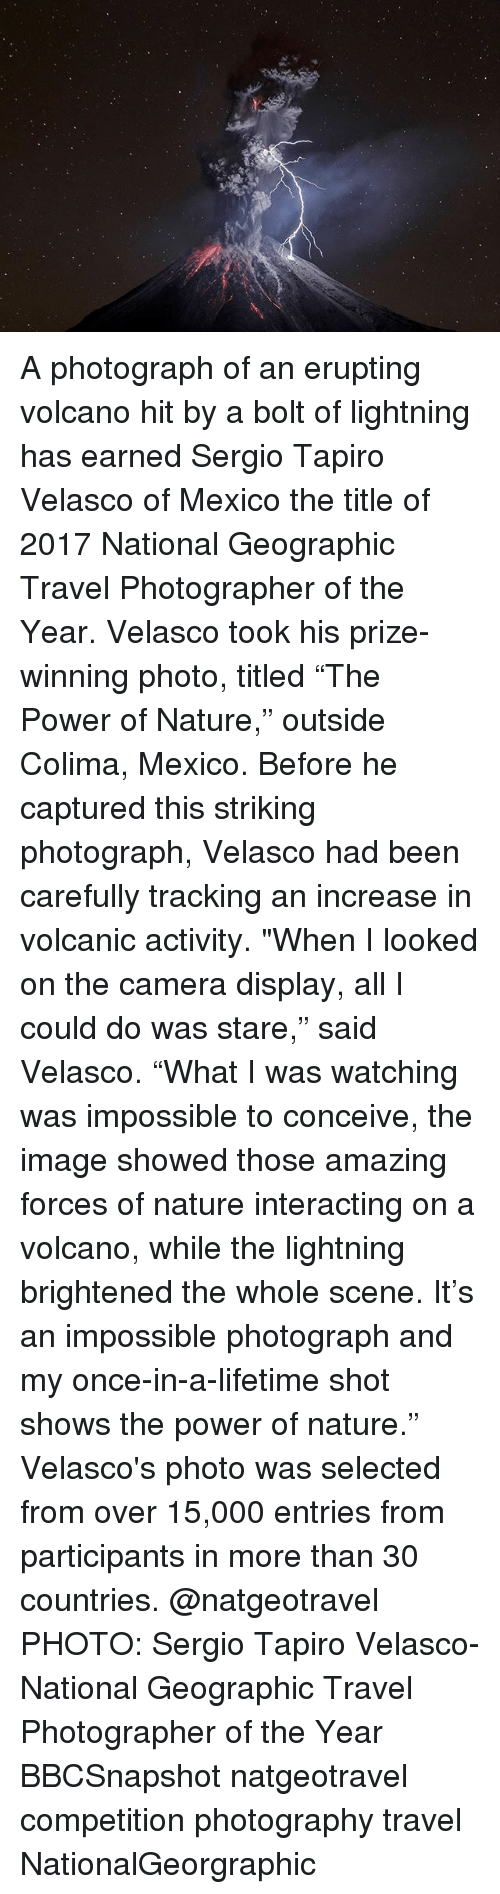 "Memes, Camera, and Image: A photograph of an erupting volcano hit by a bolt of lightning has earned Sergio Tapiro Velasco of Mexico the title of 2017 National Geographic Travel Photographer of the Year. Velasco took his prize-winning photo, titled ""The Power of Nature,"" outside Colima, Mexico. Before he captured this striking photograph, Velasco had been carefully tracking an increase in volcanic activity. ""When I looked on the camera display, all I could do was stare,"" said Velasco. ""What I was watching was impossible to conceive, the image showed those amazing forces of nature interacting on a volcano, while the lightning brightened the whole scene. It's an impossible photograph and my once-in-a-lifetime shot shows the power of nature."" Velasco's photo was selected from over 15,000 entries from participants in more than 30 countries. @natgeotravel PHOTO: Sergio Tapiro Velasco- National Geographic Travel Photographer of the Year BBCSnapshot natgeotravel competition photography travel NationalGeorgraphic"